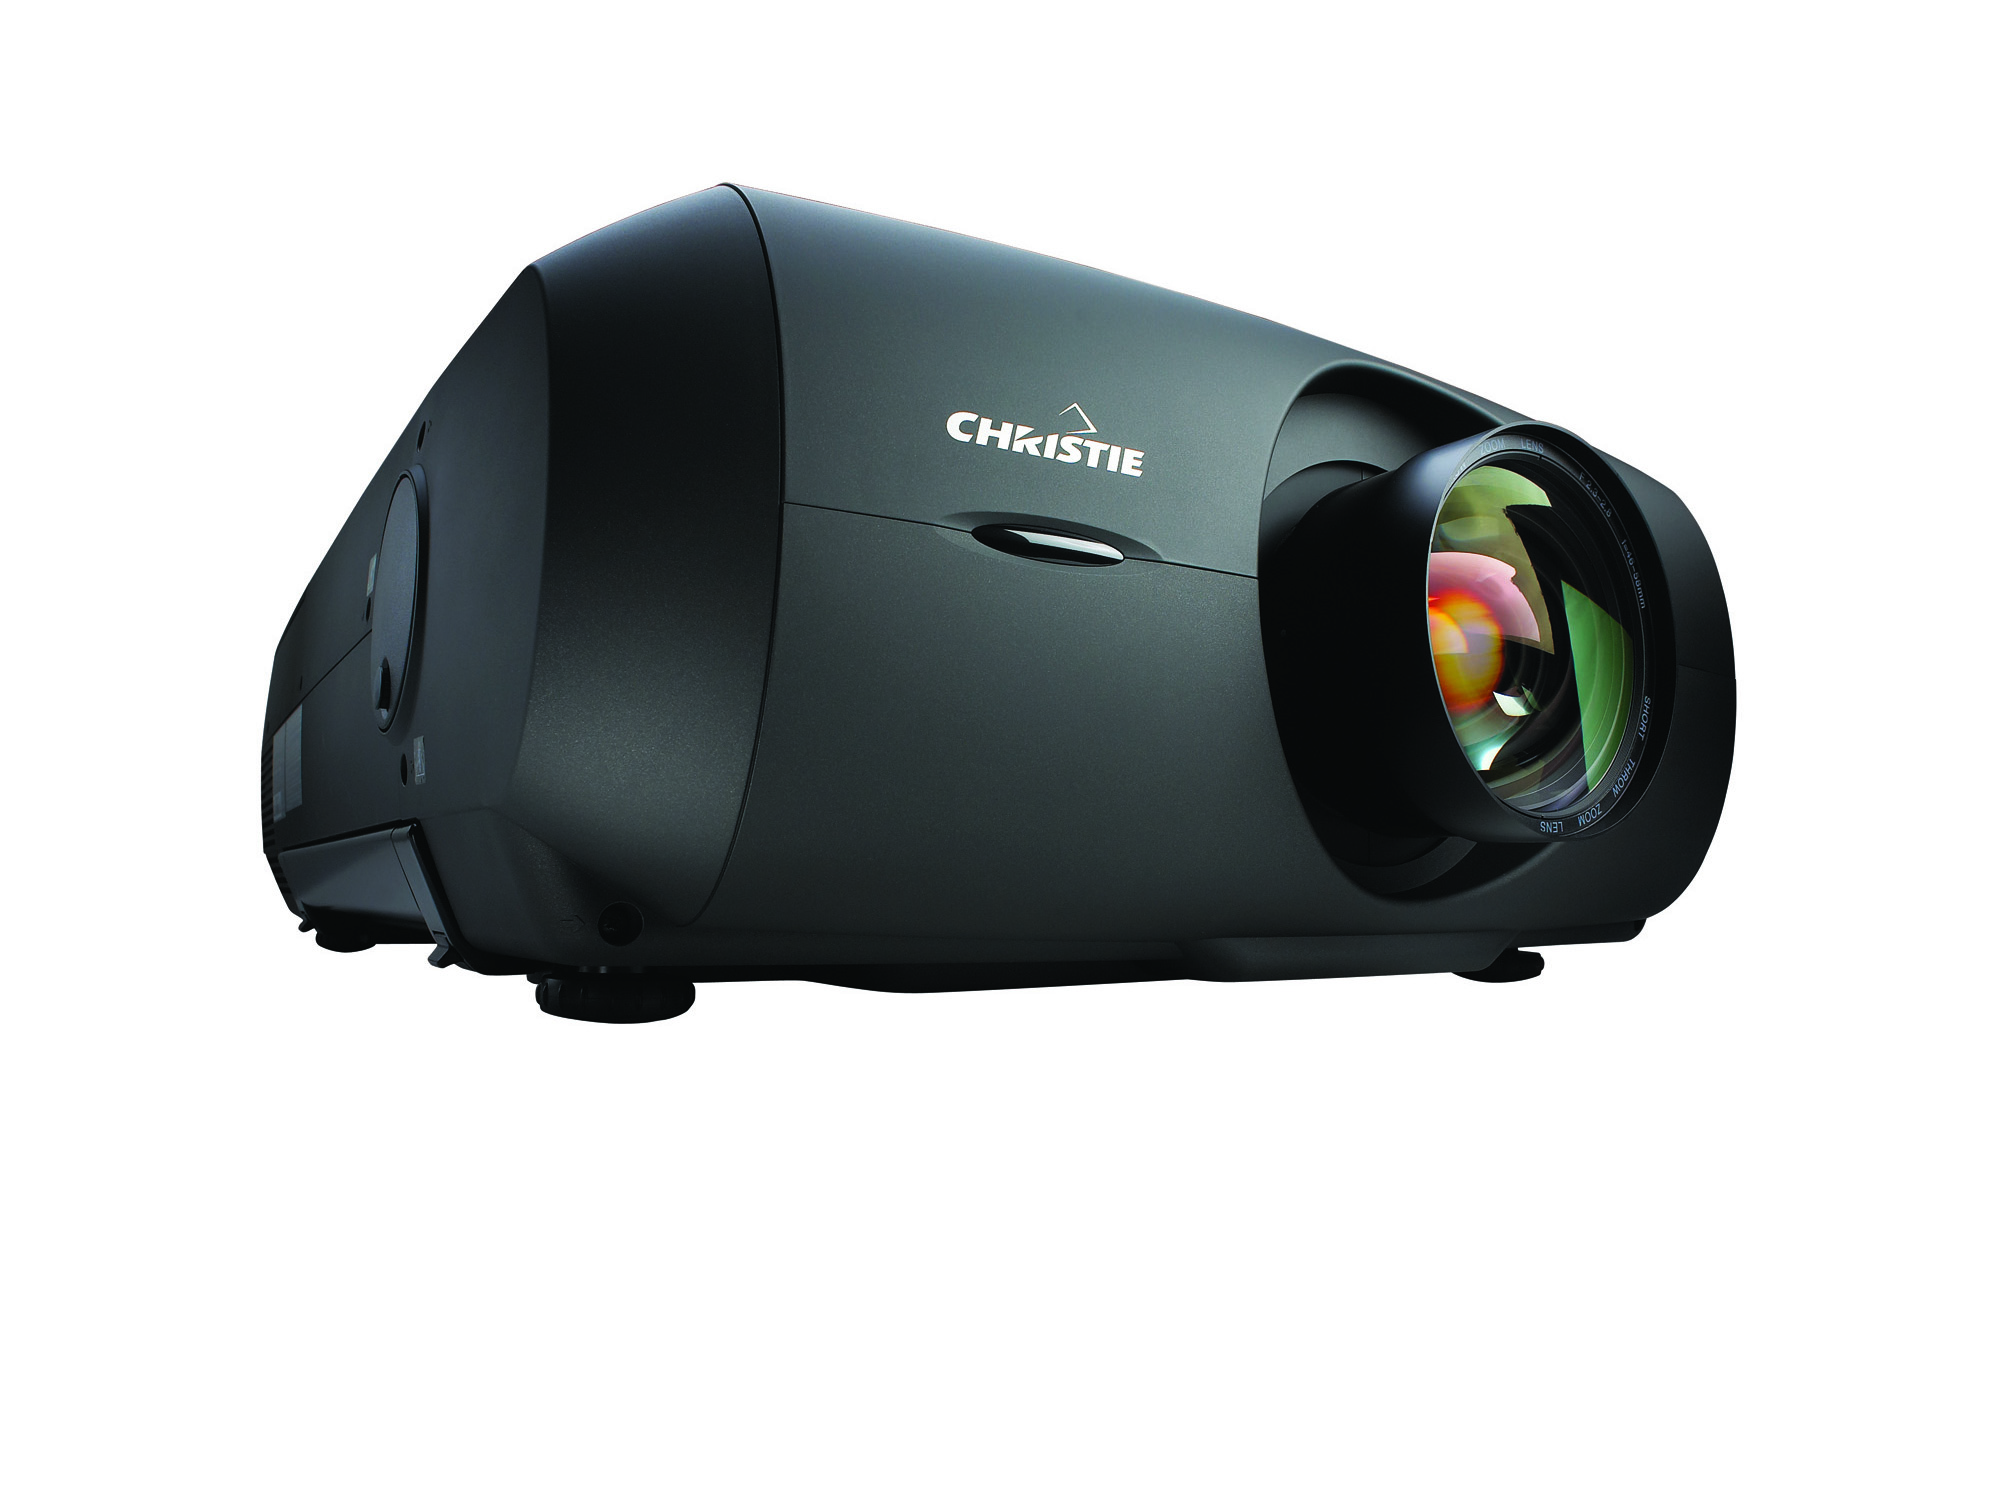 /globalassets/.catalog/products/images/christie-lx1500/gallery/christie-lx1500-lcd-projector-lowleft.jpg